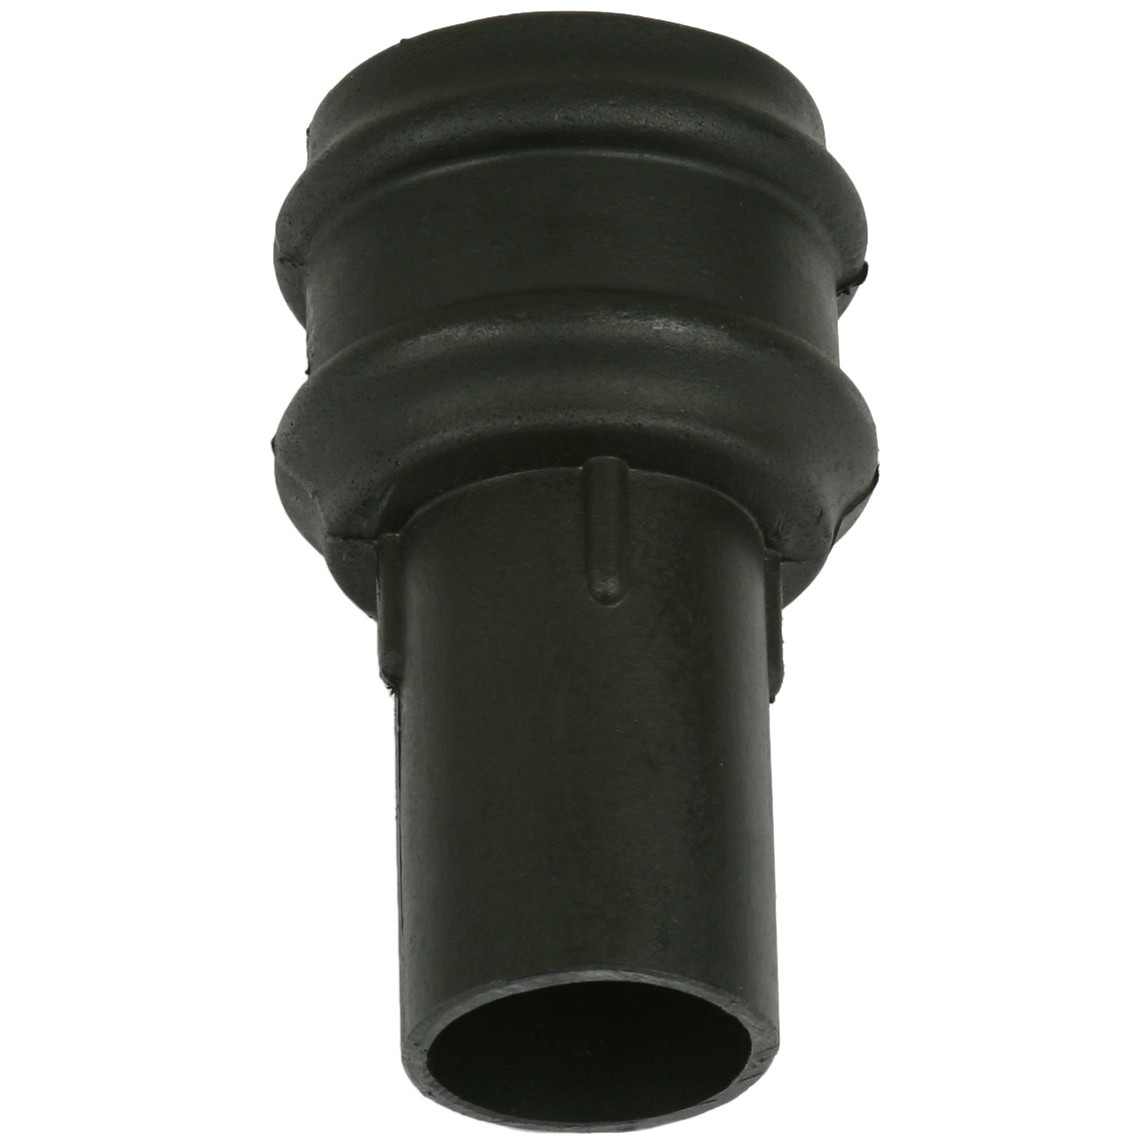 Cascade 68mm Round Cast Iron Style Down Pipe Coupler (Without Lugs) - Black